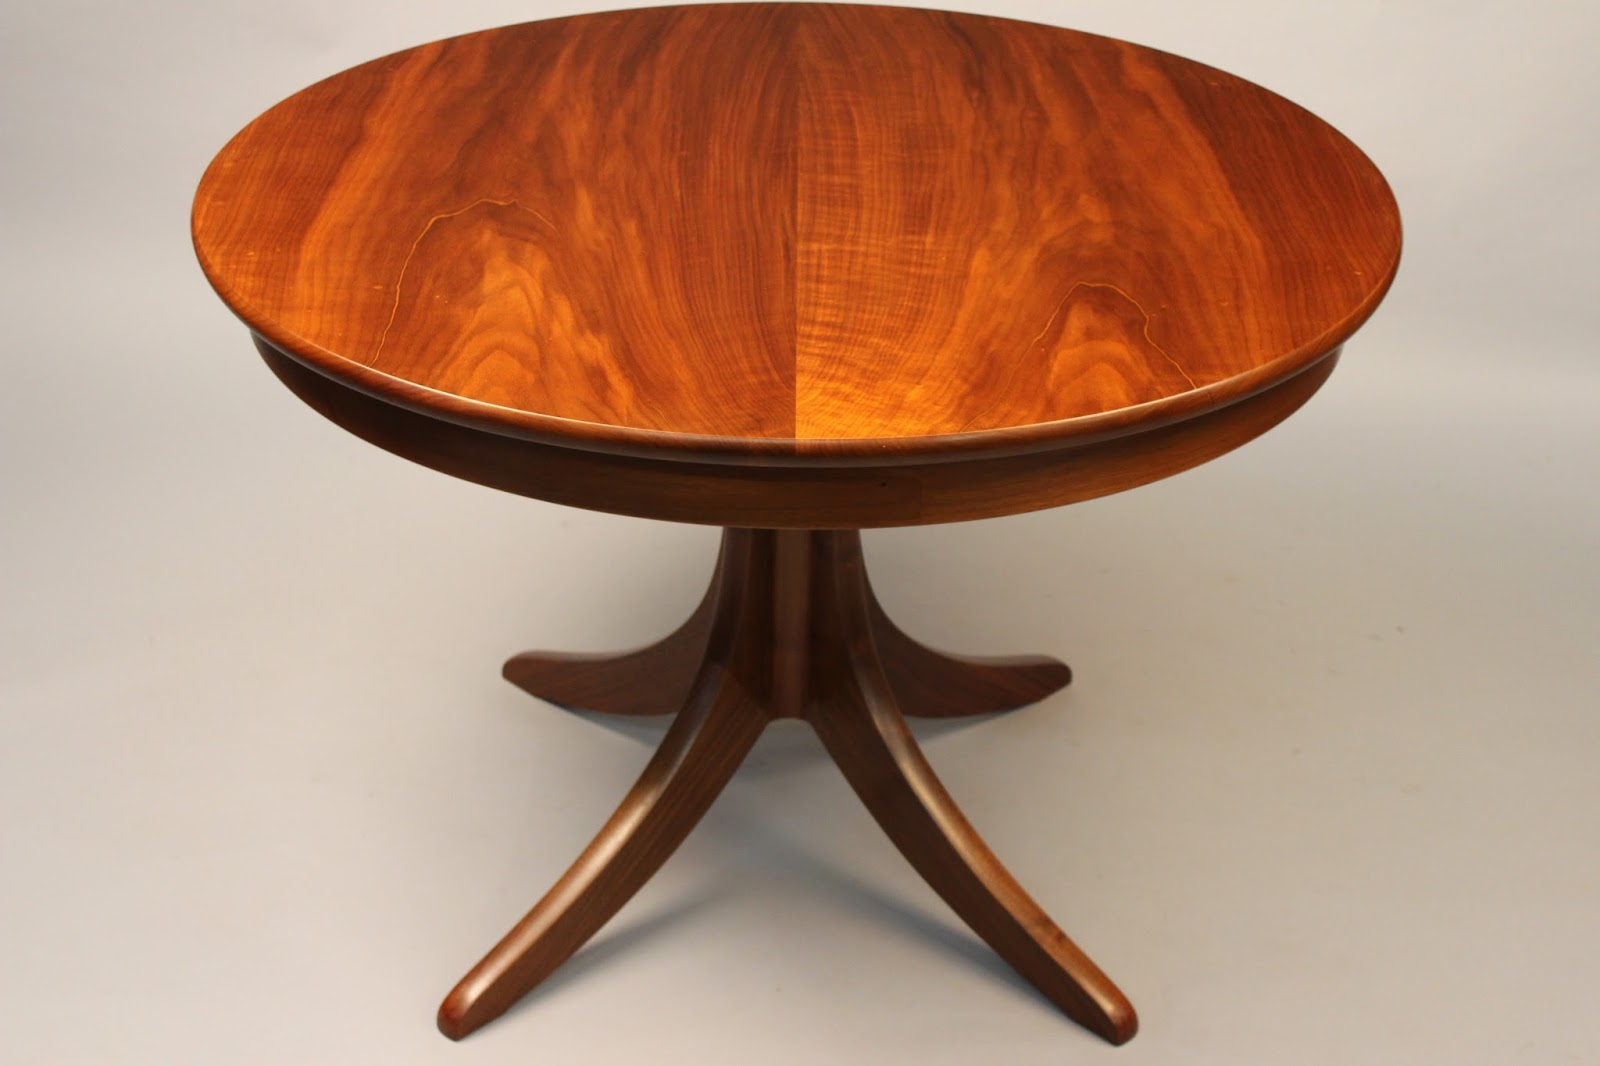 Pedestal table handcrafted of walnut